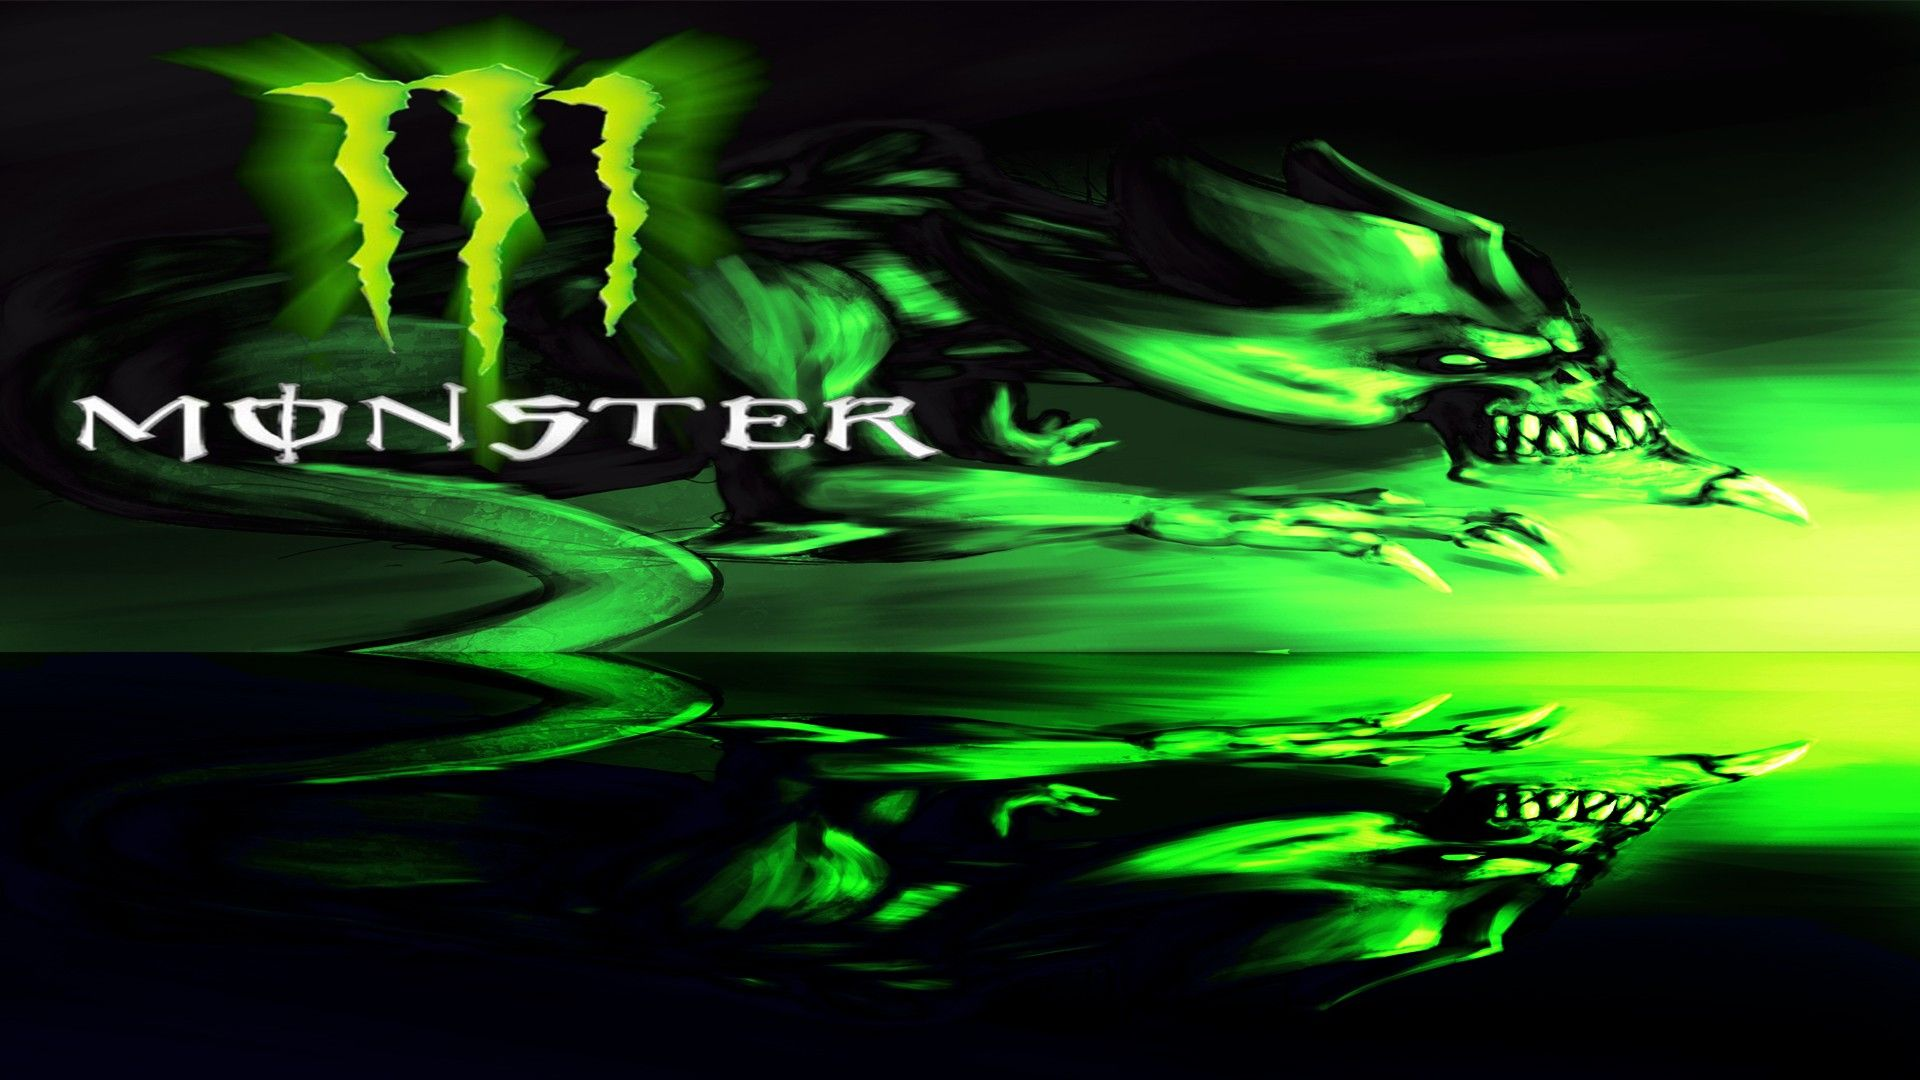 Monster energy wallpaper hd hd wallpapers pinterest monster energy wallpaper hd voltagebd Images